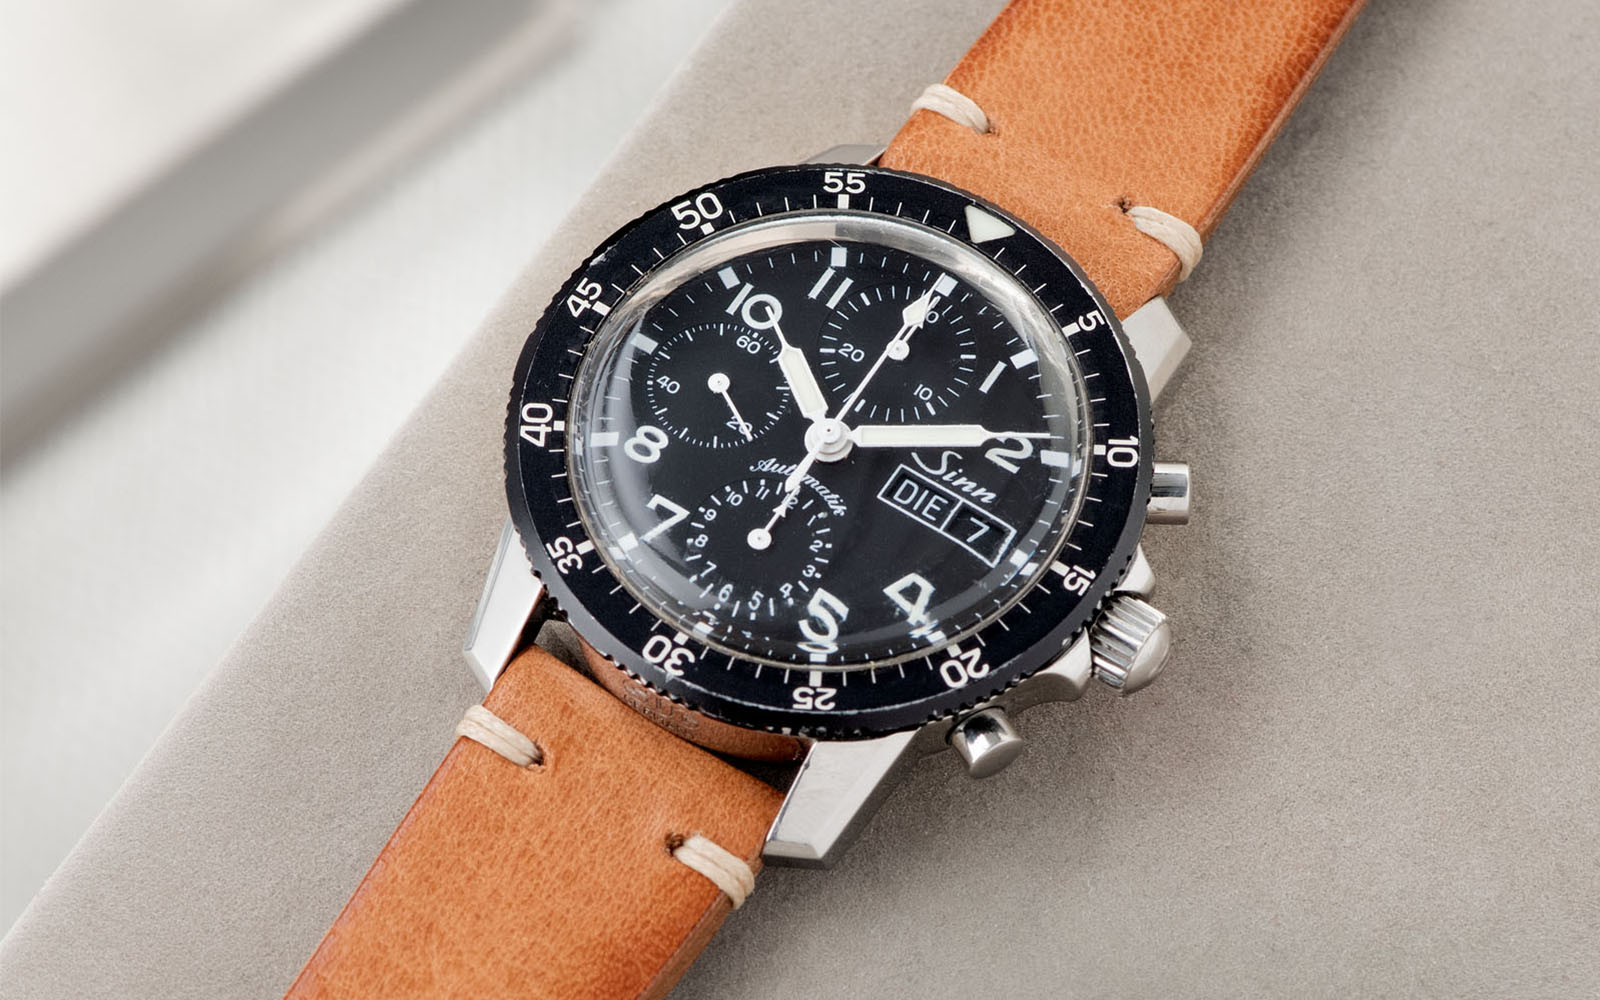 Bulang and Sons_Strap Guide_Sinn 103_Caramel Brown Leather Watch Strap_Banner